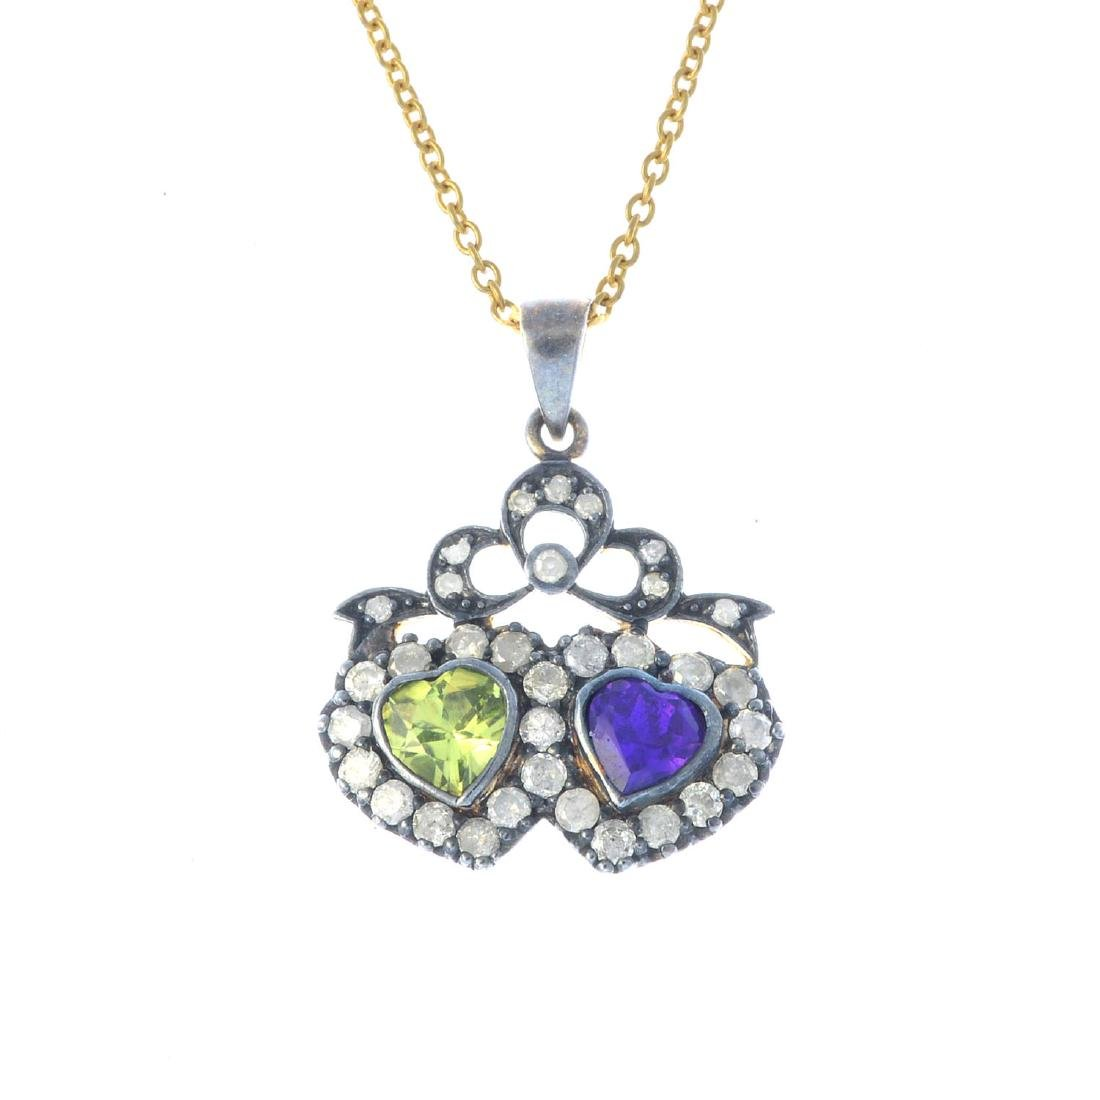 A diamond, amethyst and peridot pendant. The